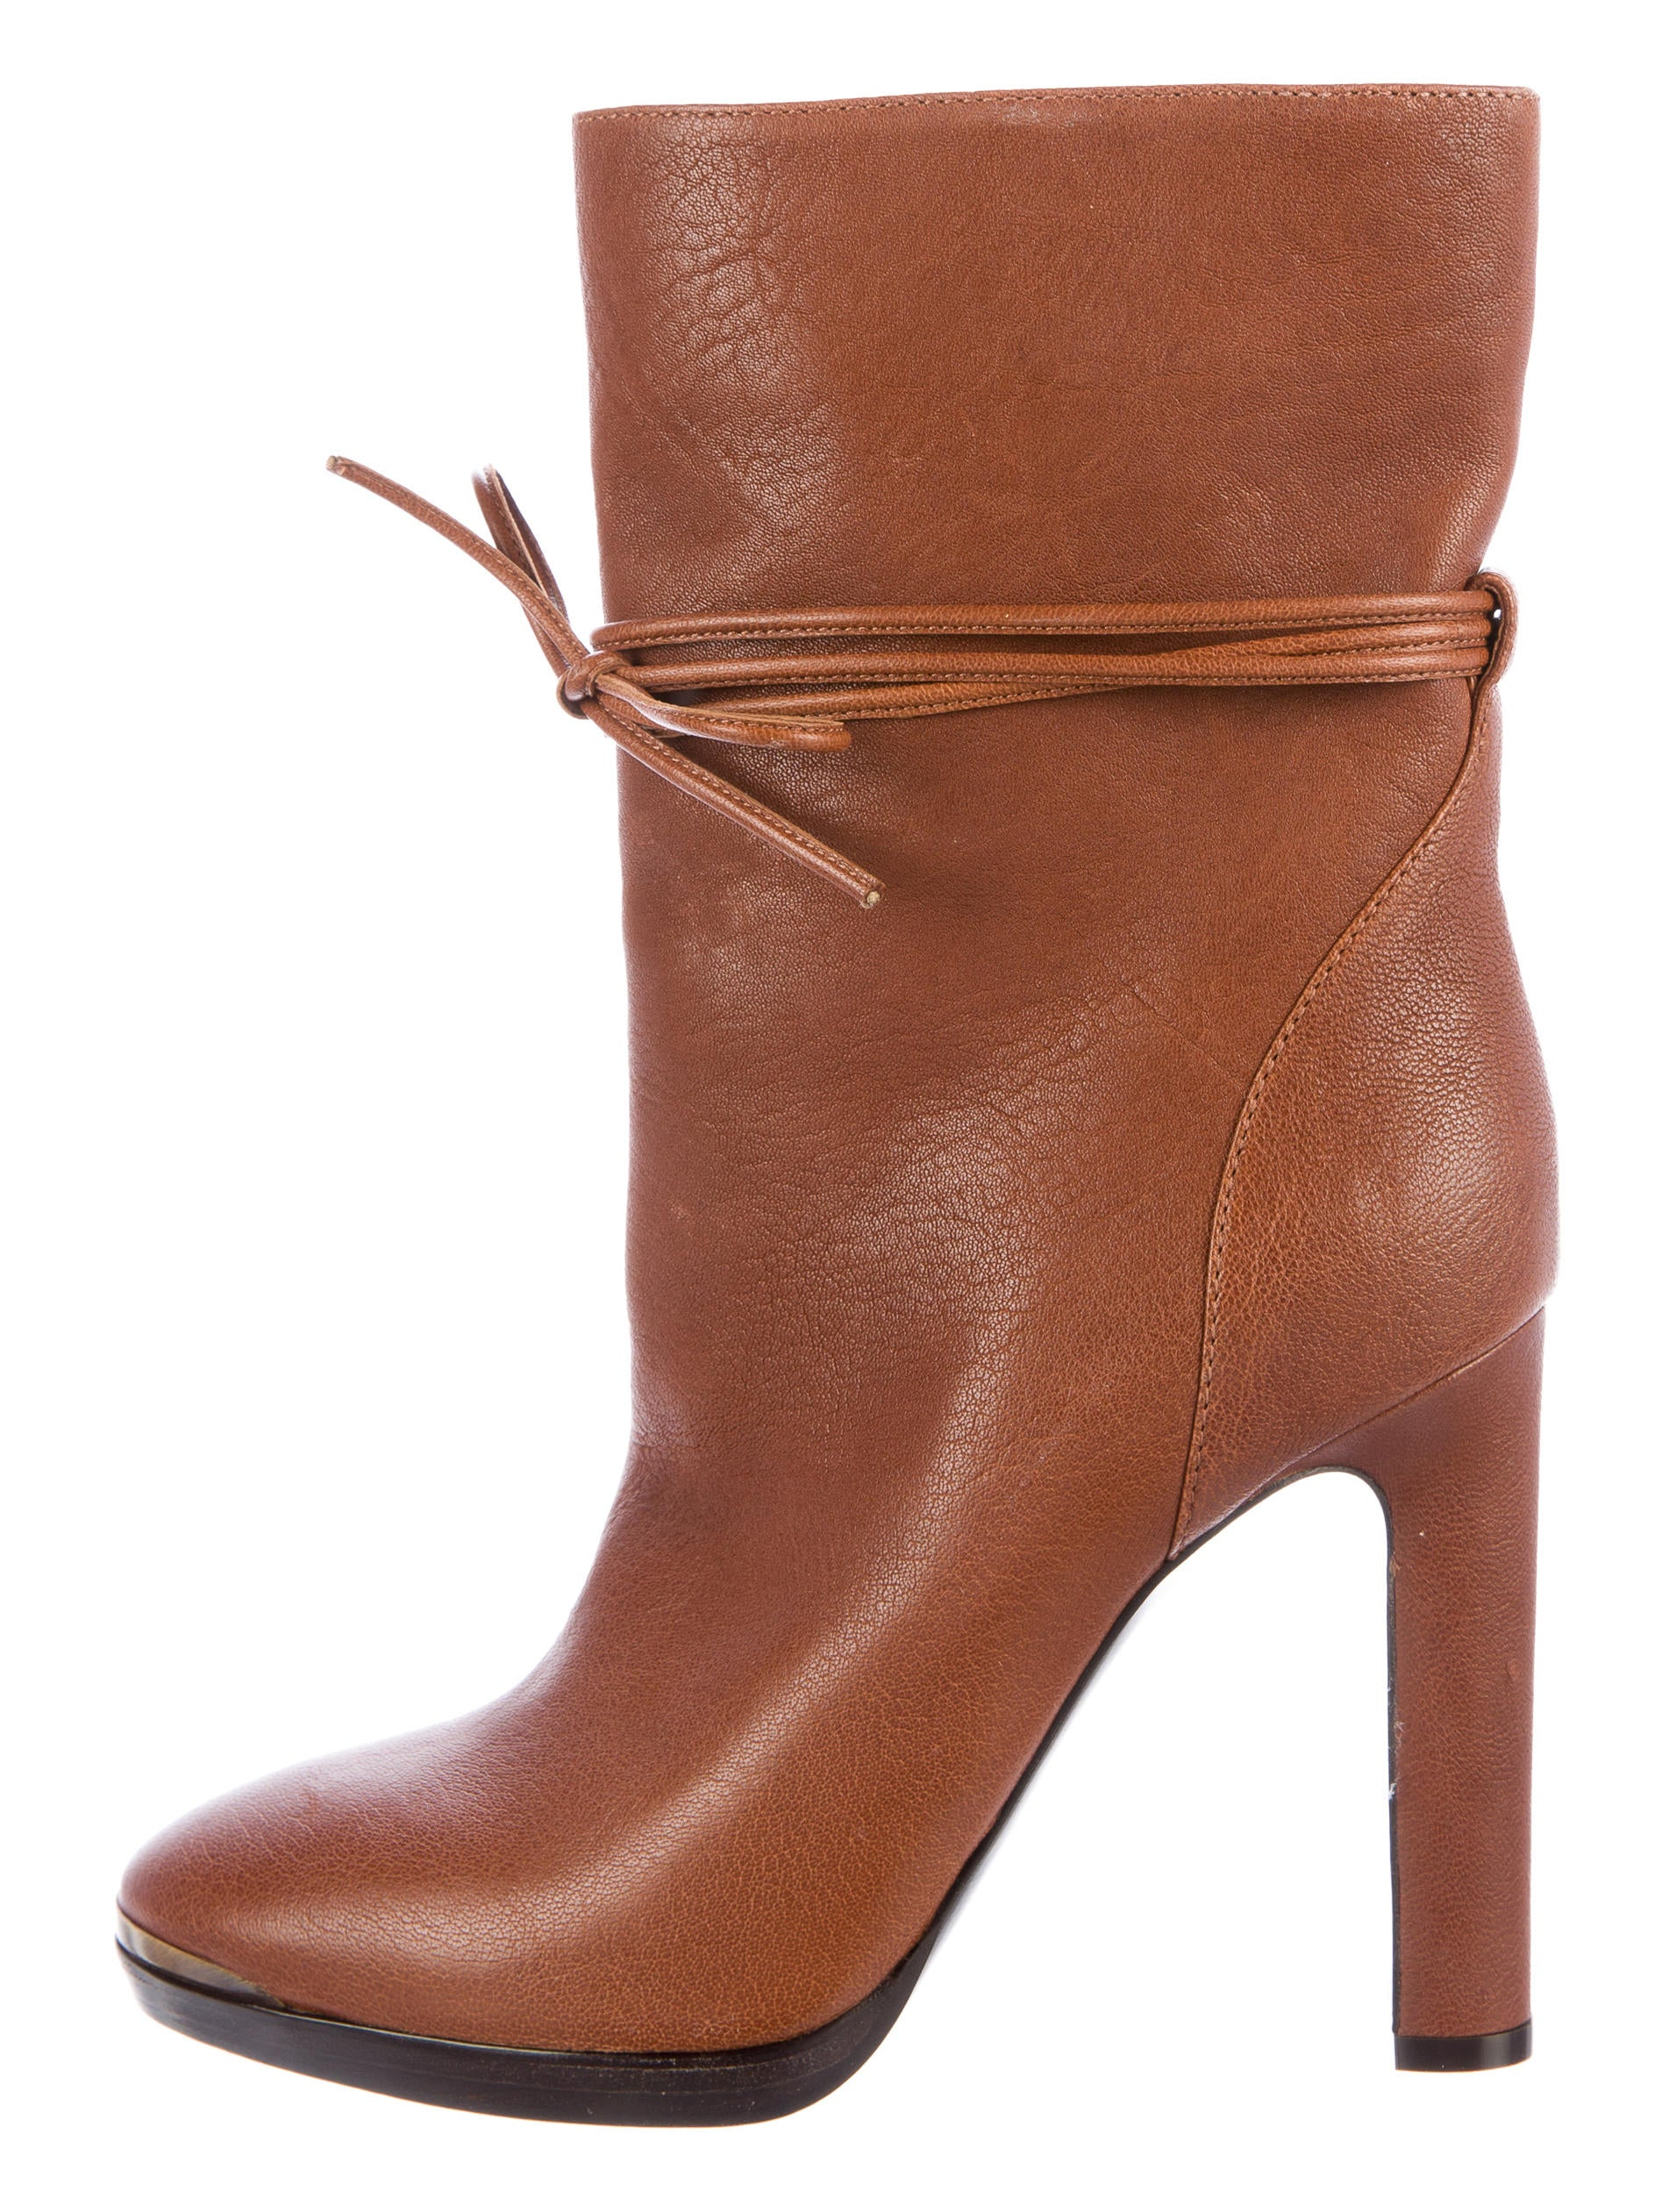 Lanvin Leather Round-Toe Boots perfect cheap price clearance largest supplier amazing price online ks5muJ0DQc